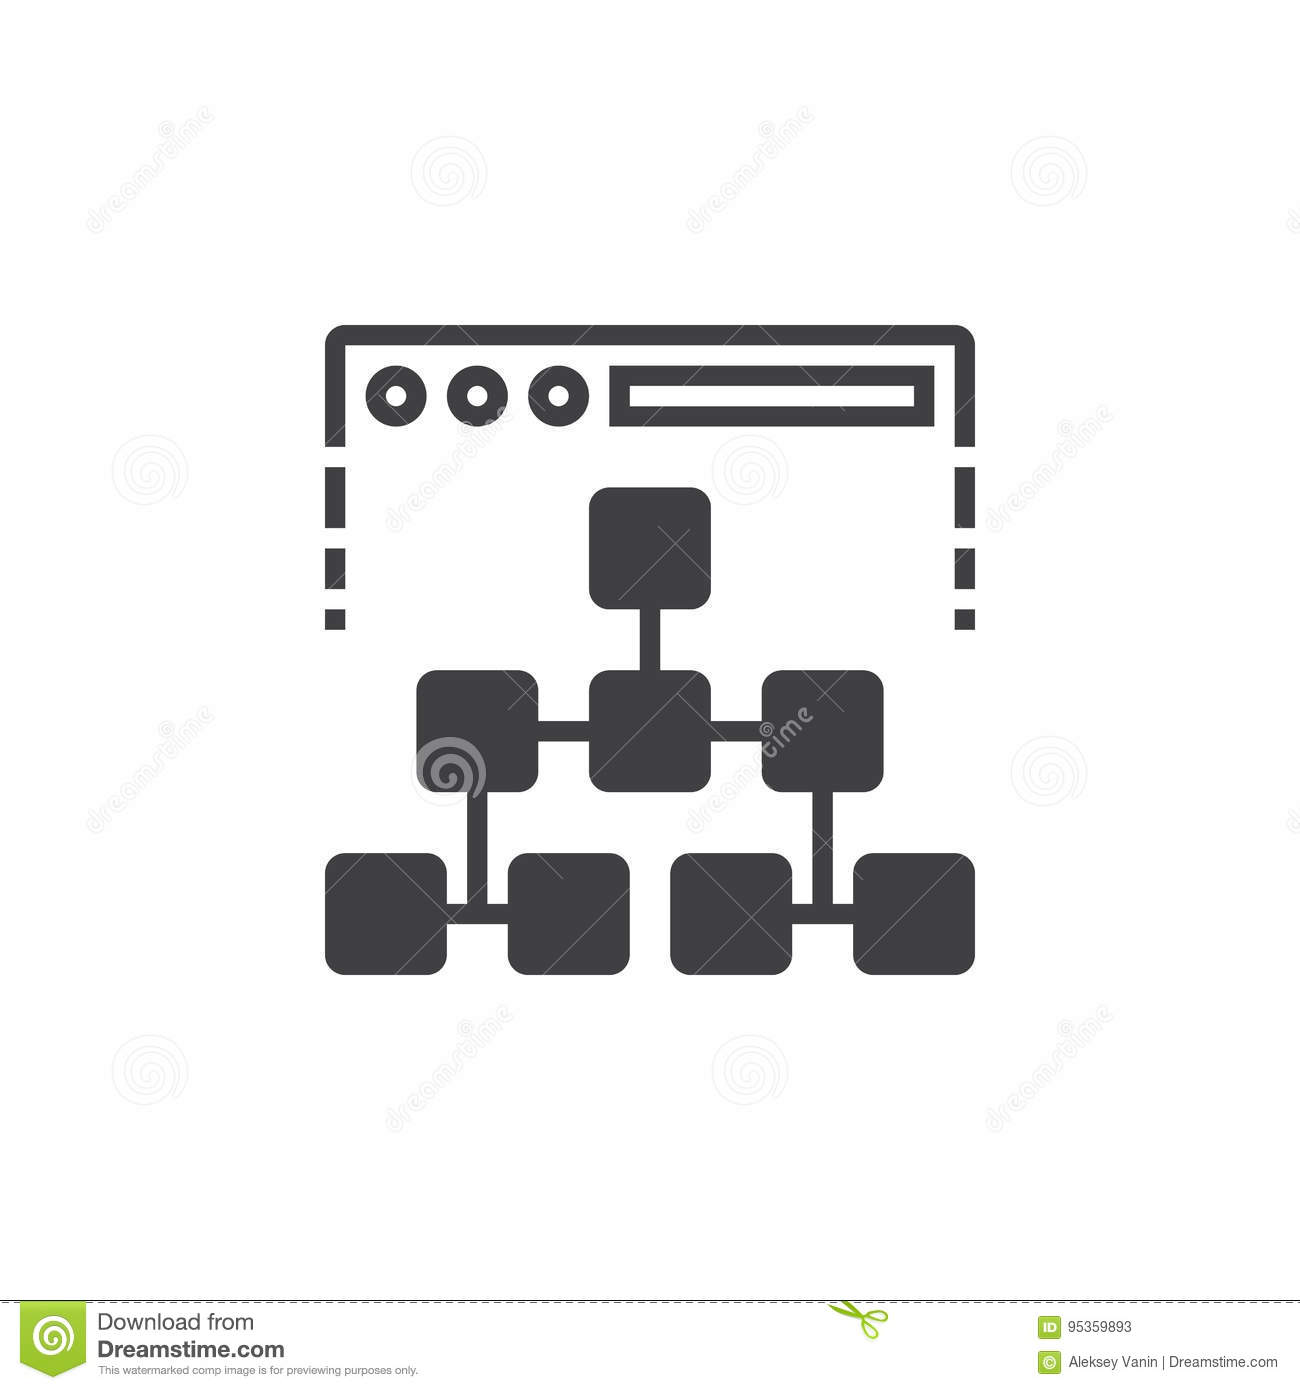 Site map icon vector, filled flat sign, solid pictogram isolated